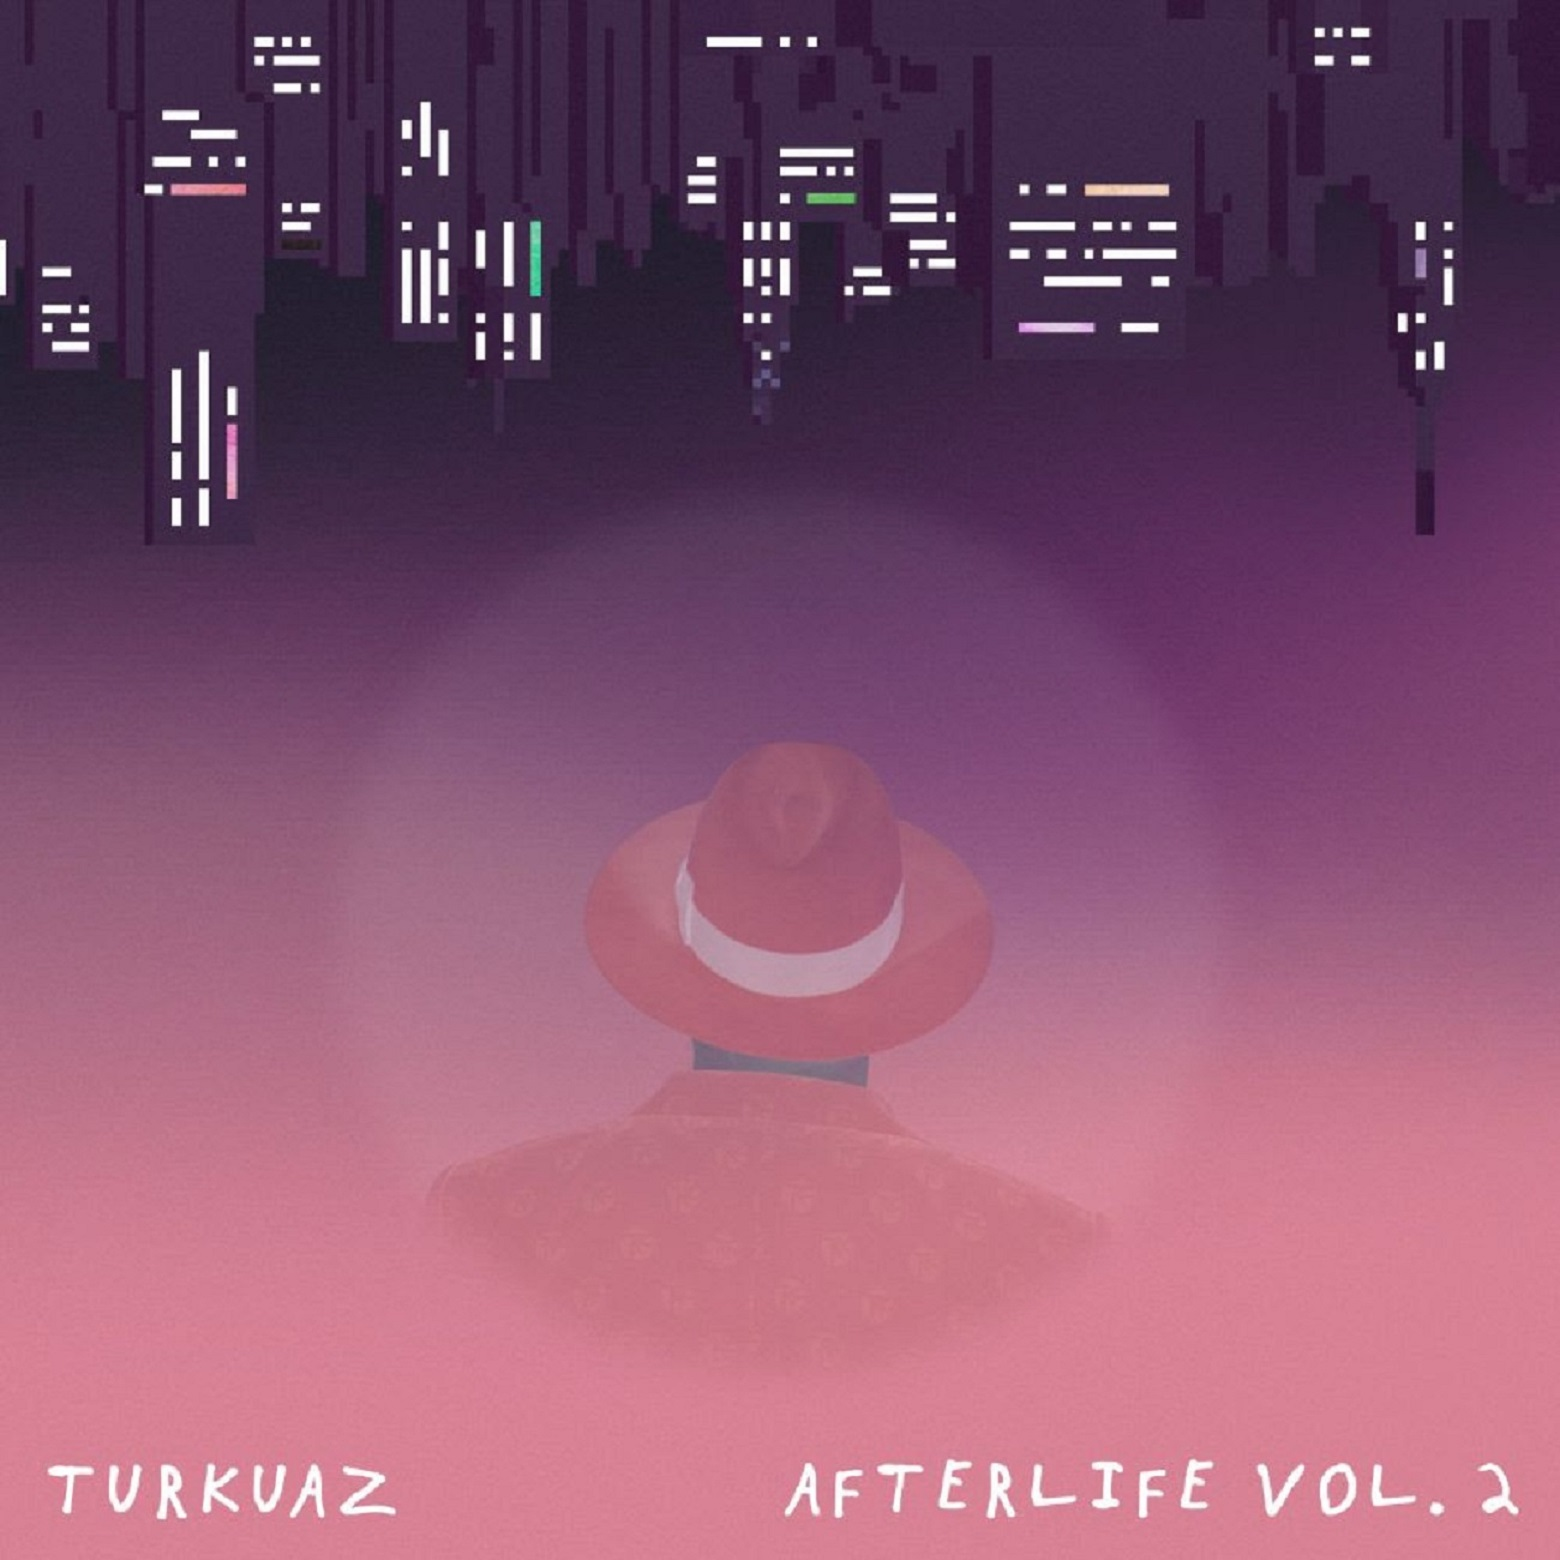 Turkuaz Shares 2nd Half Of 'Afterlife' EP Pair -- Vol. 2 Out Now